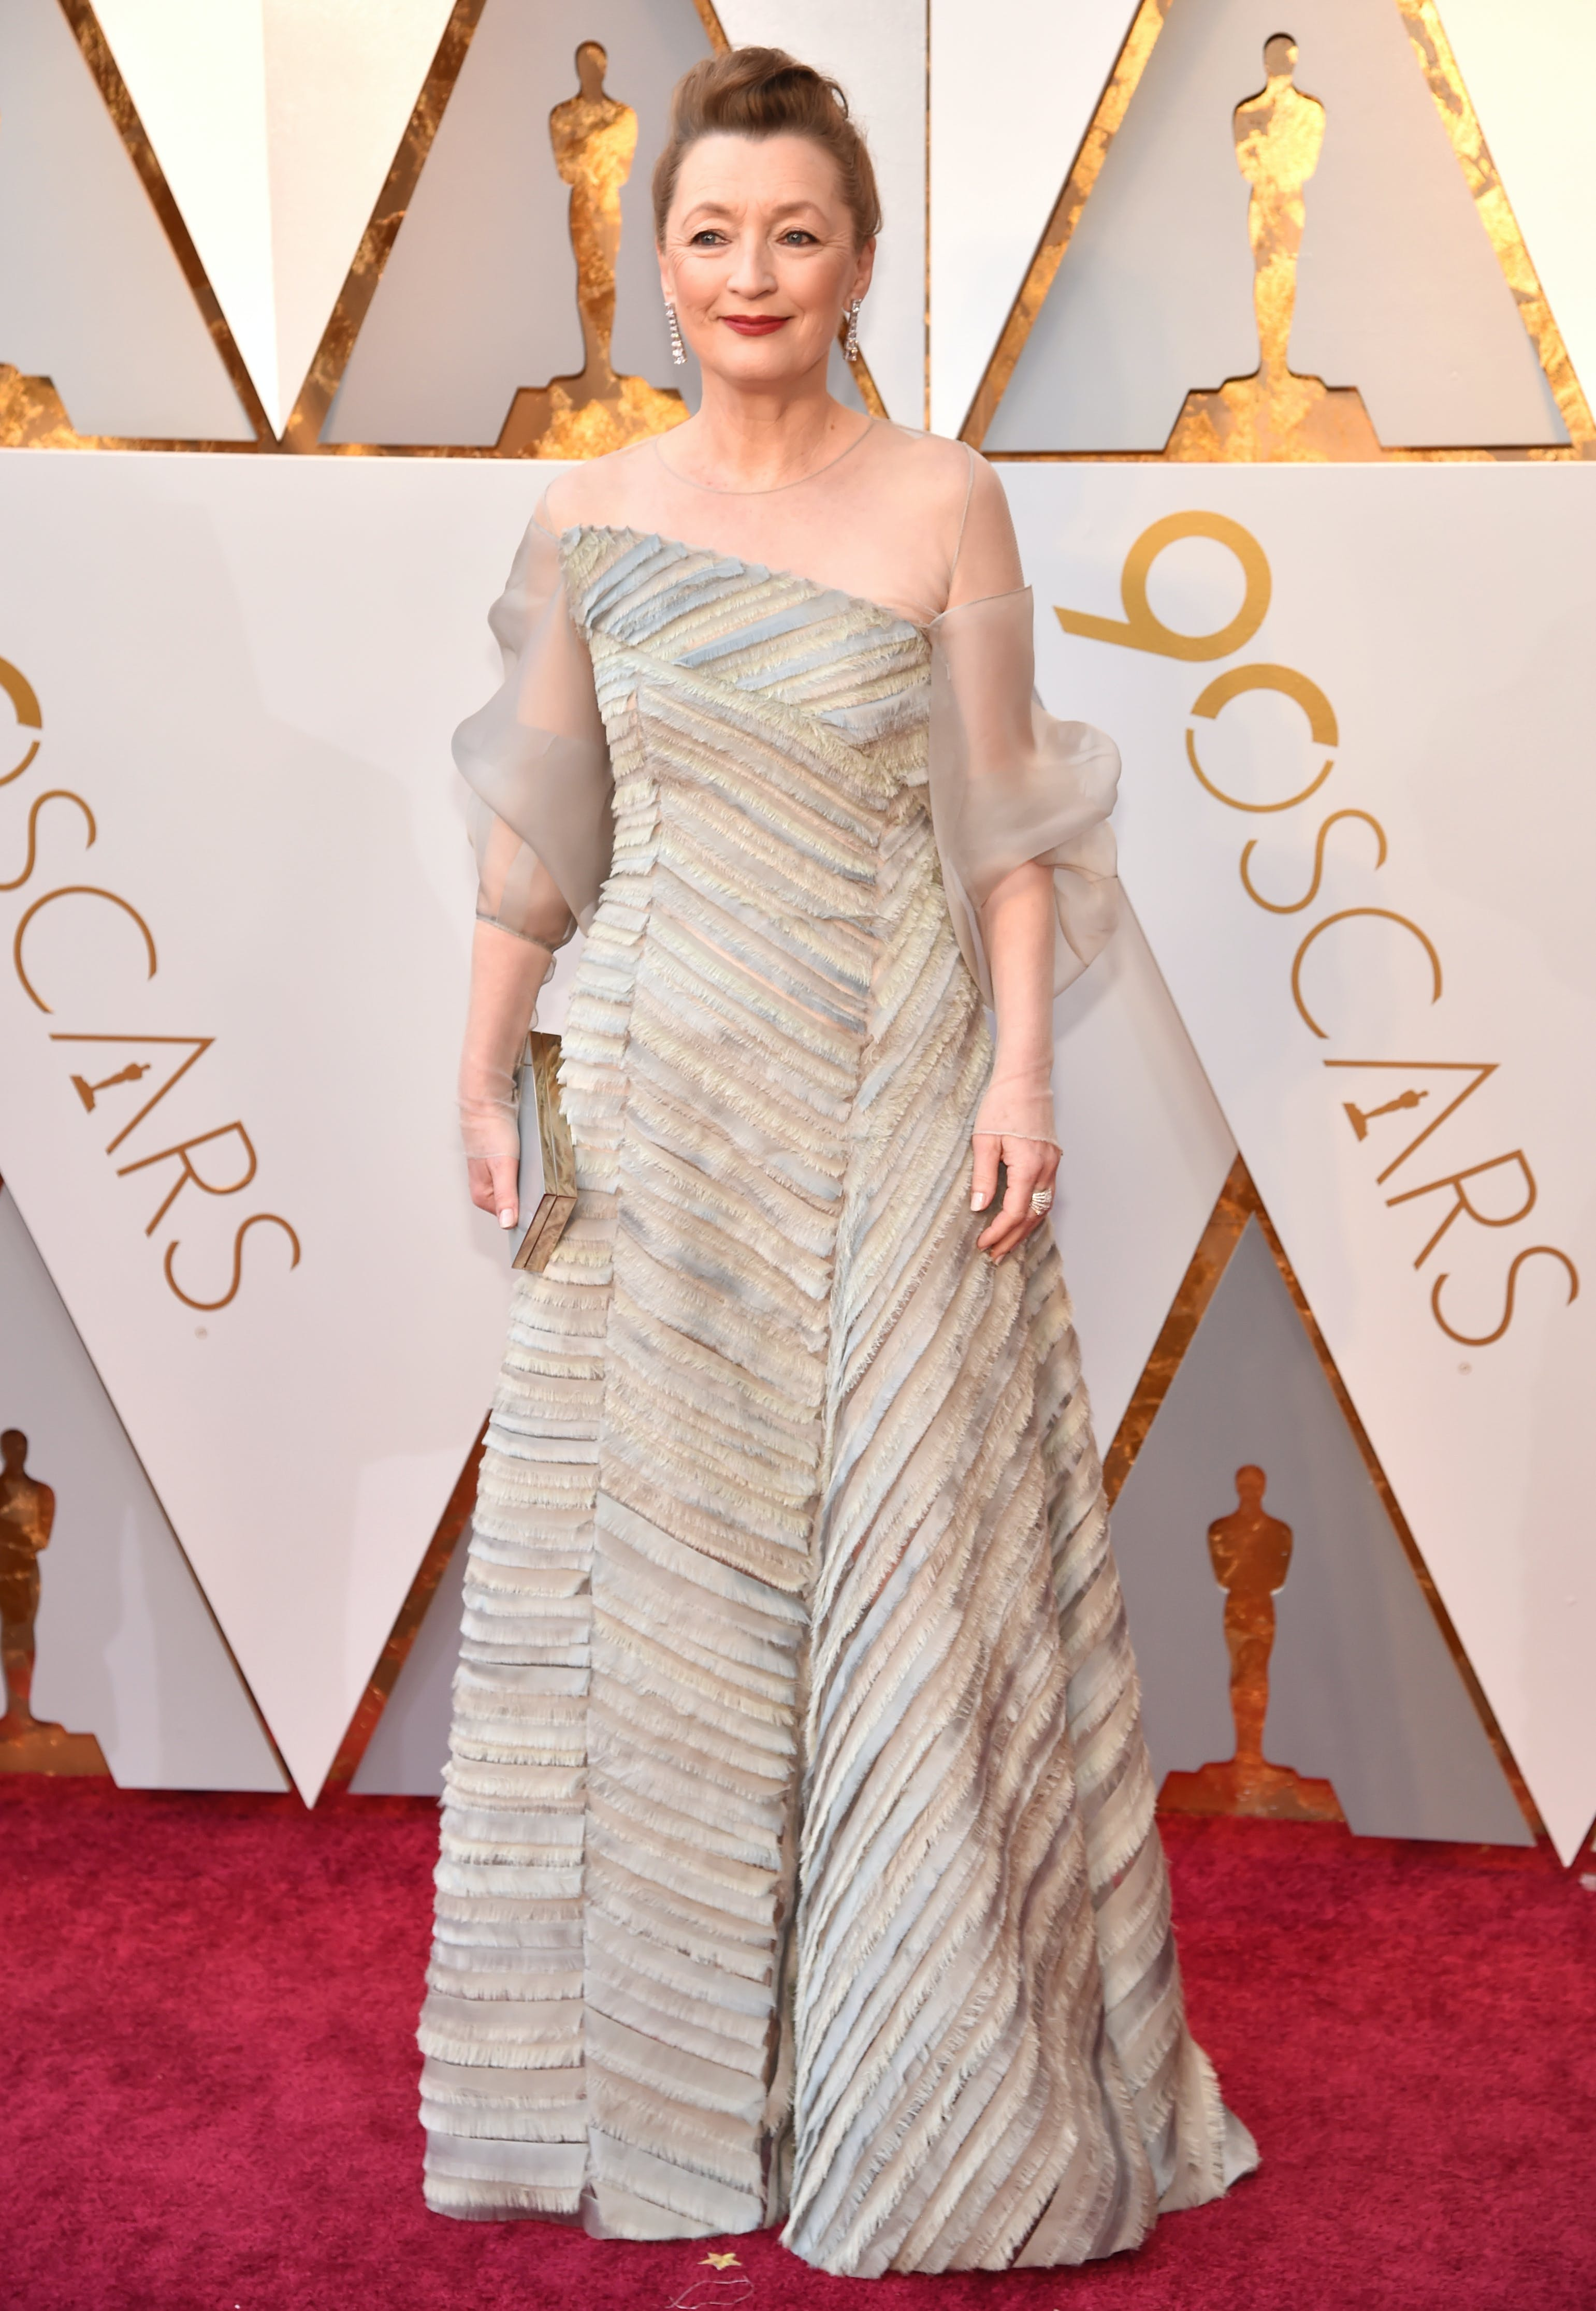 Lesley Manville at the 2018 Oscars